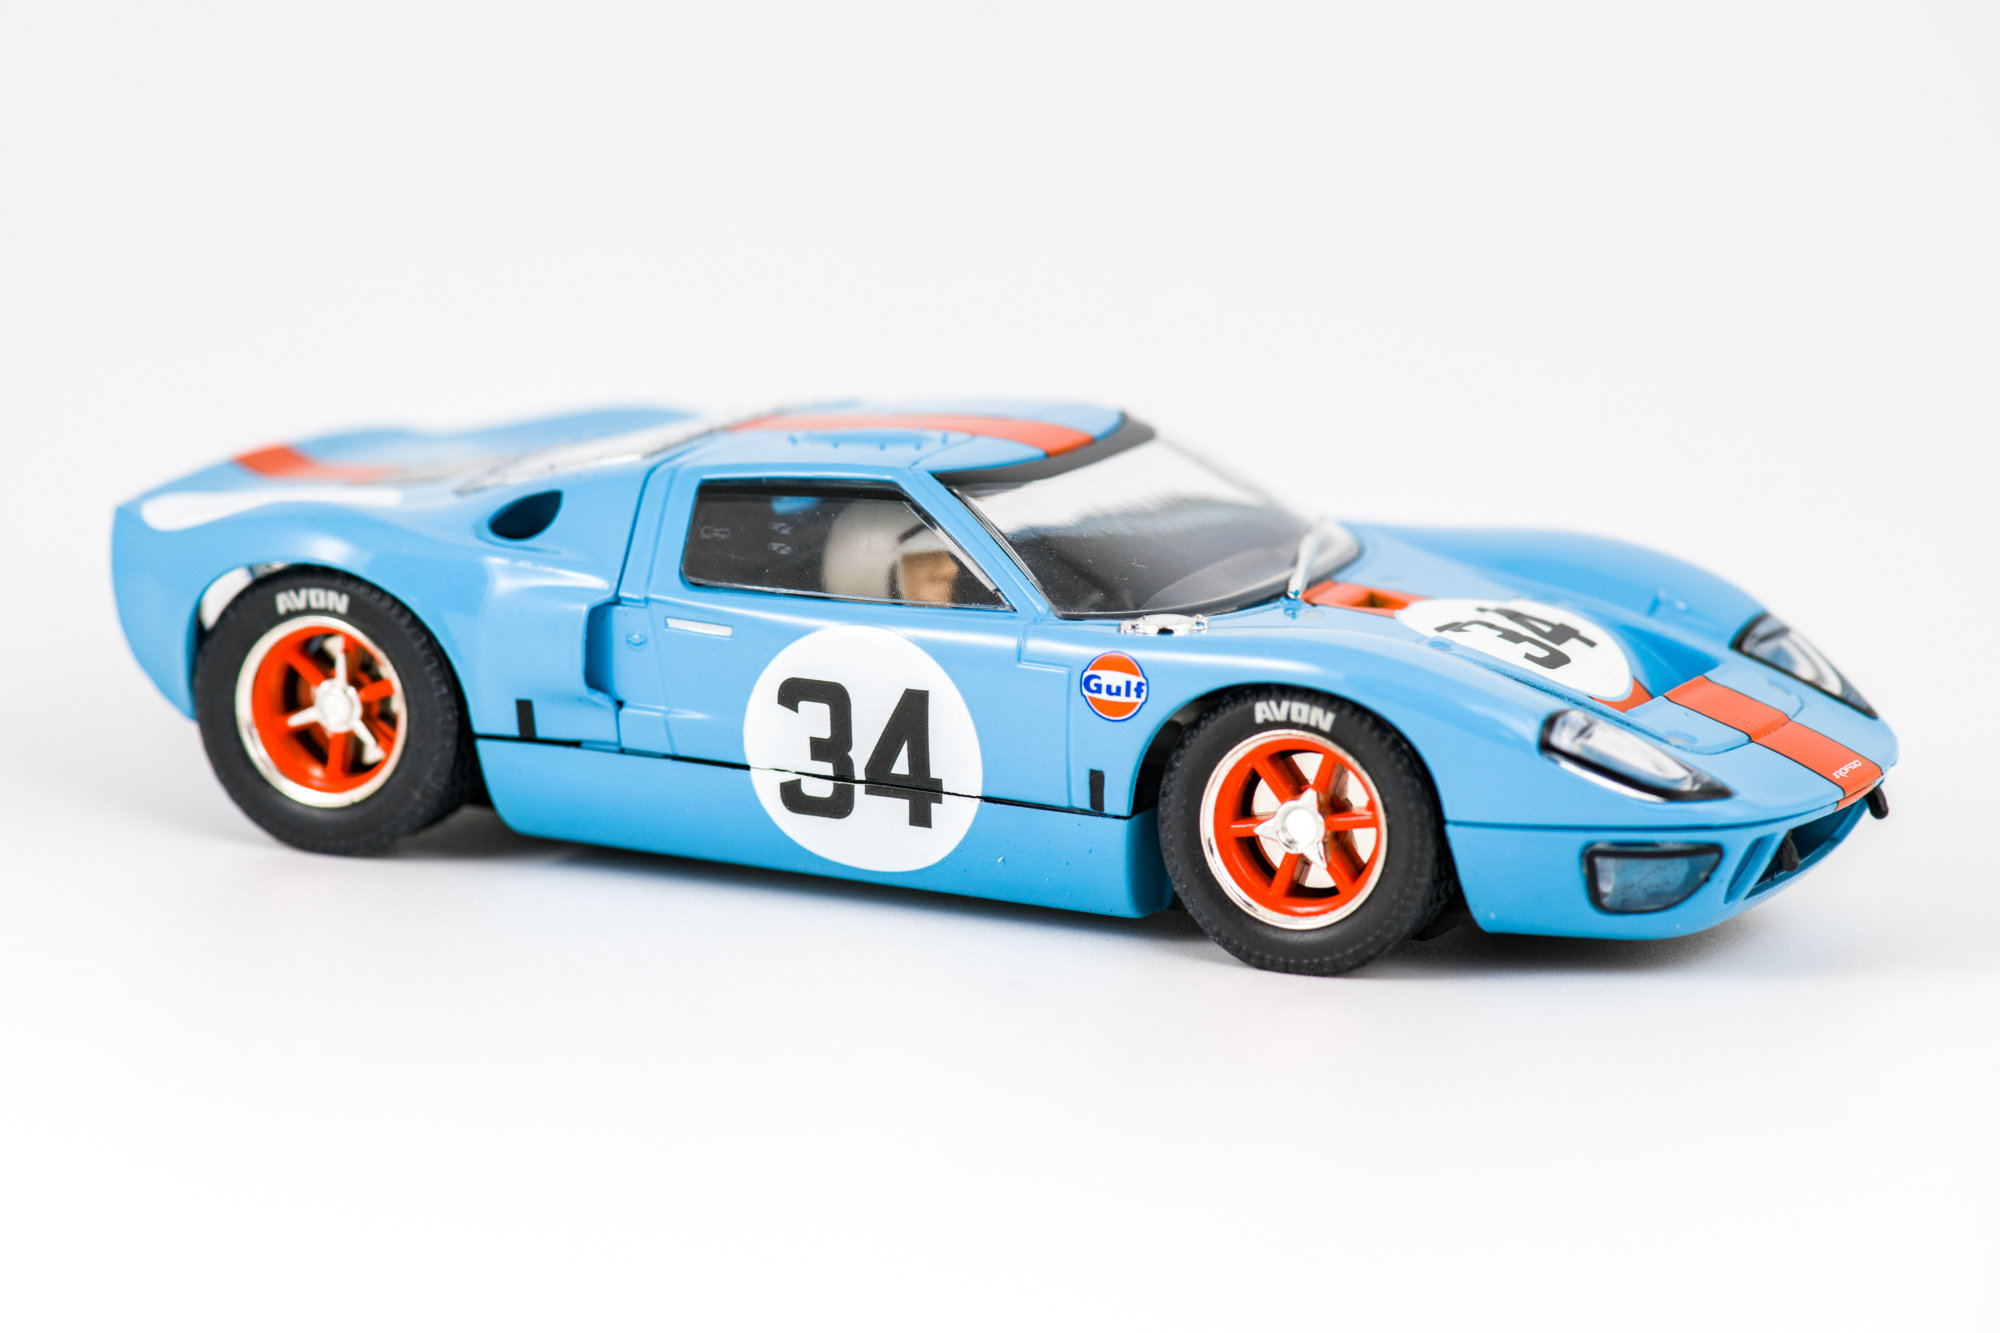 Ford GT40 Spa 1000 km 1968 - Scalextric ROFGO Collection Gulf Triple Pack